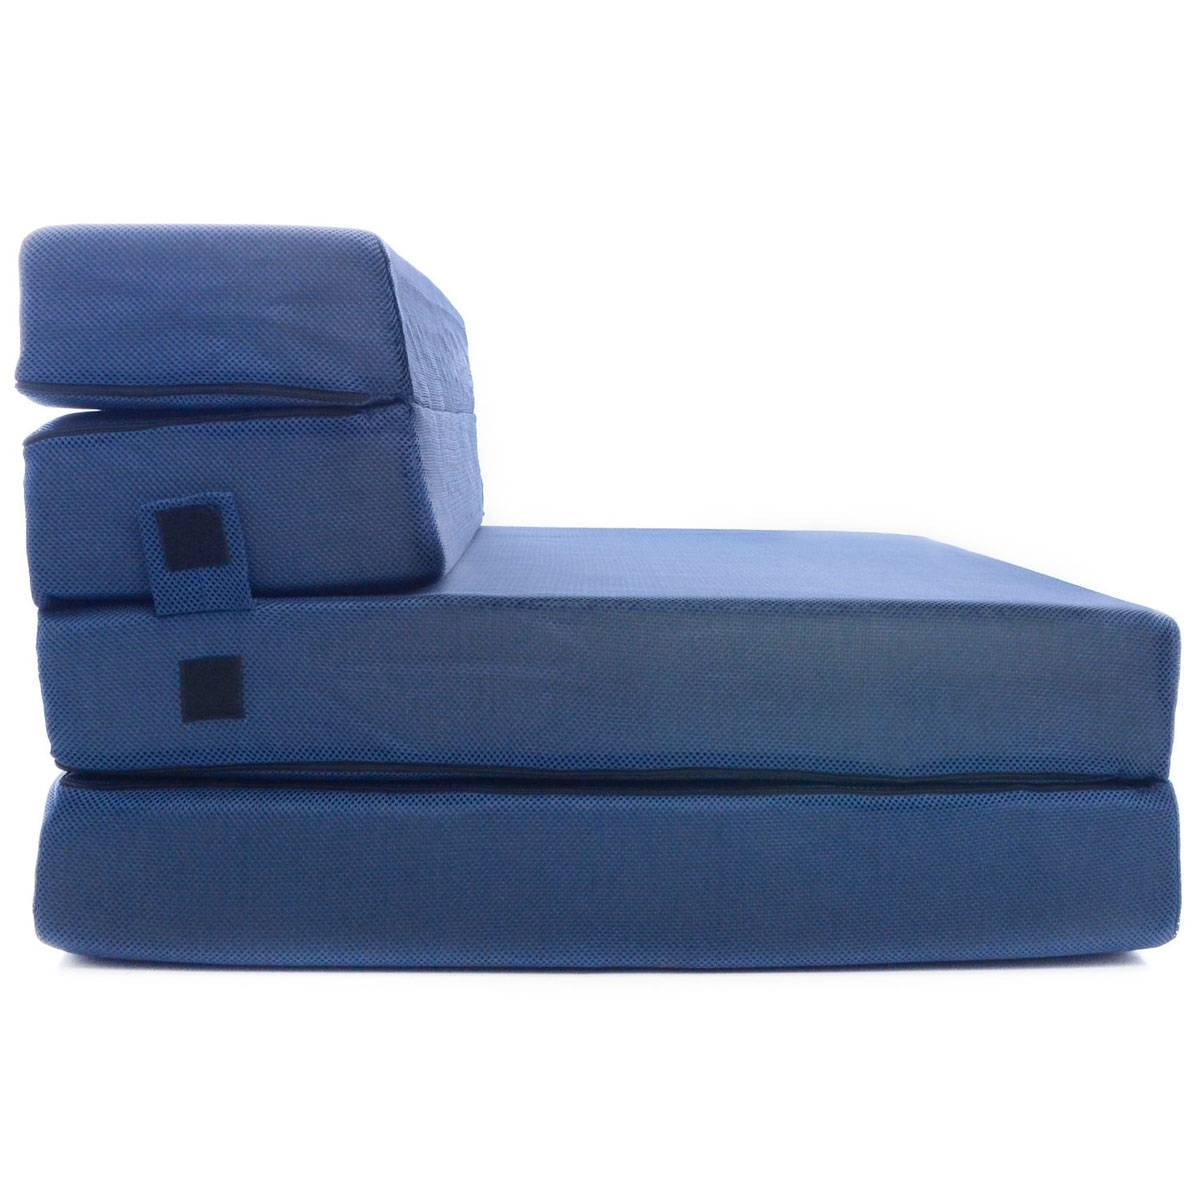 Sofas Center : Folding Lazy Sofa Couch With Pillow Floor Chairs with regard to Folding Sofa Chairs (Image 23 of 30)